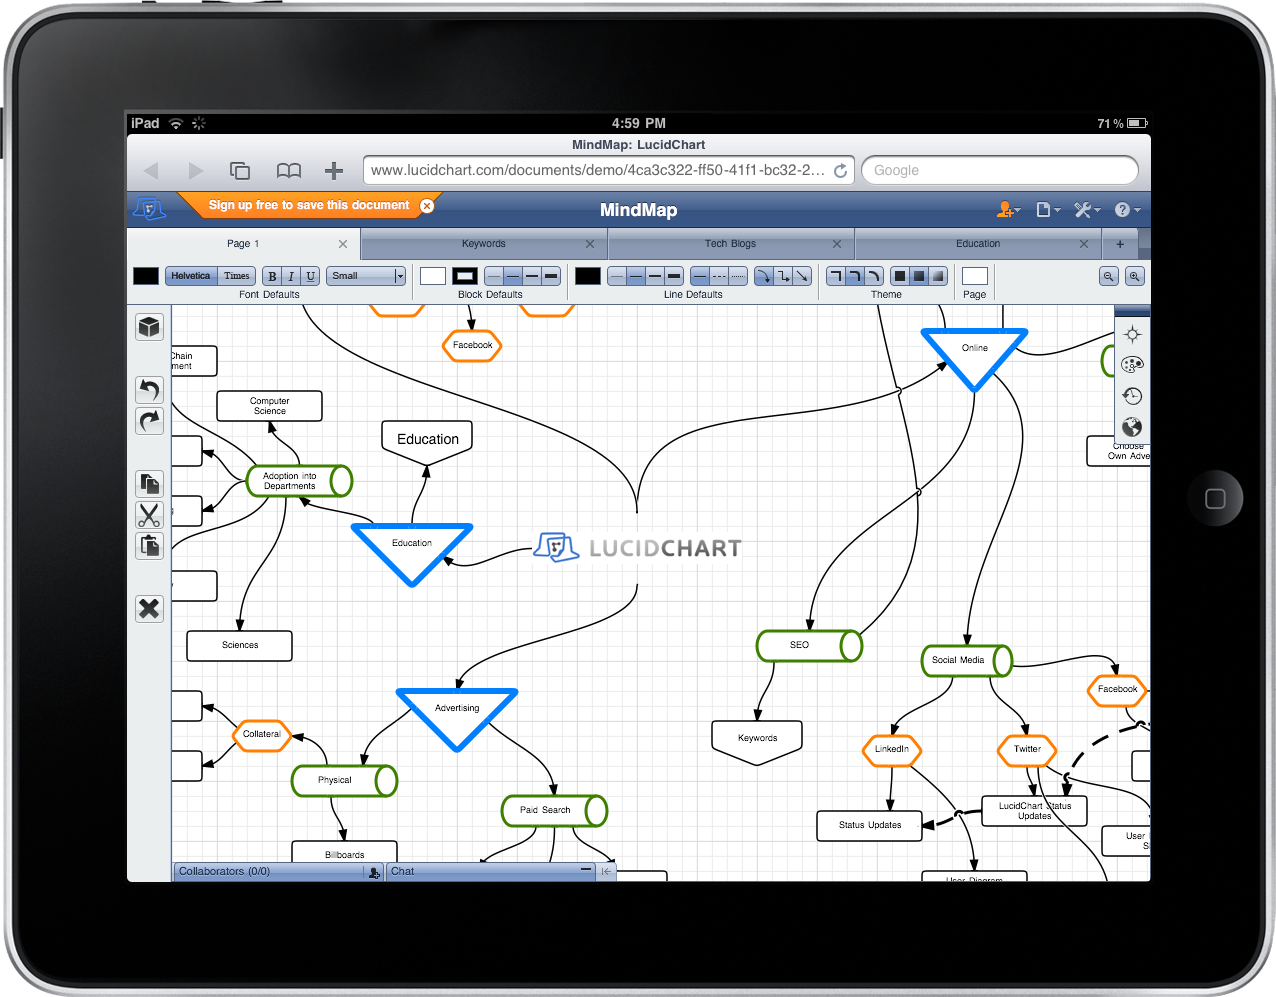 LucidChart Launches Offline, Accessibility Features at ... on internet map art, internet email, internet health, internet web app, internet map store, internet phone app, internet map history,